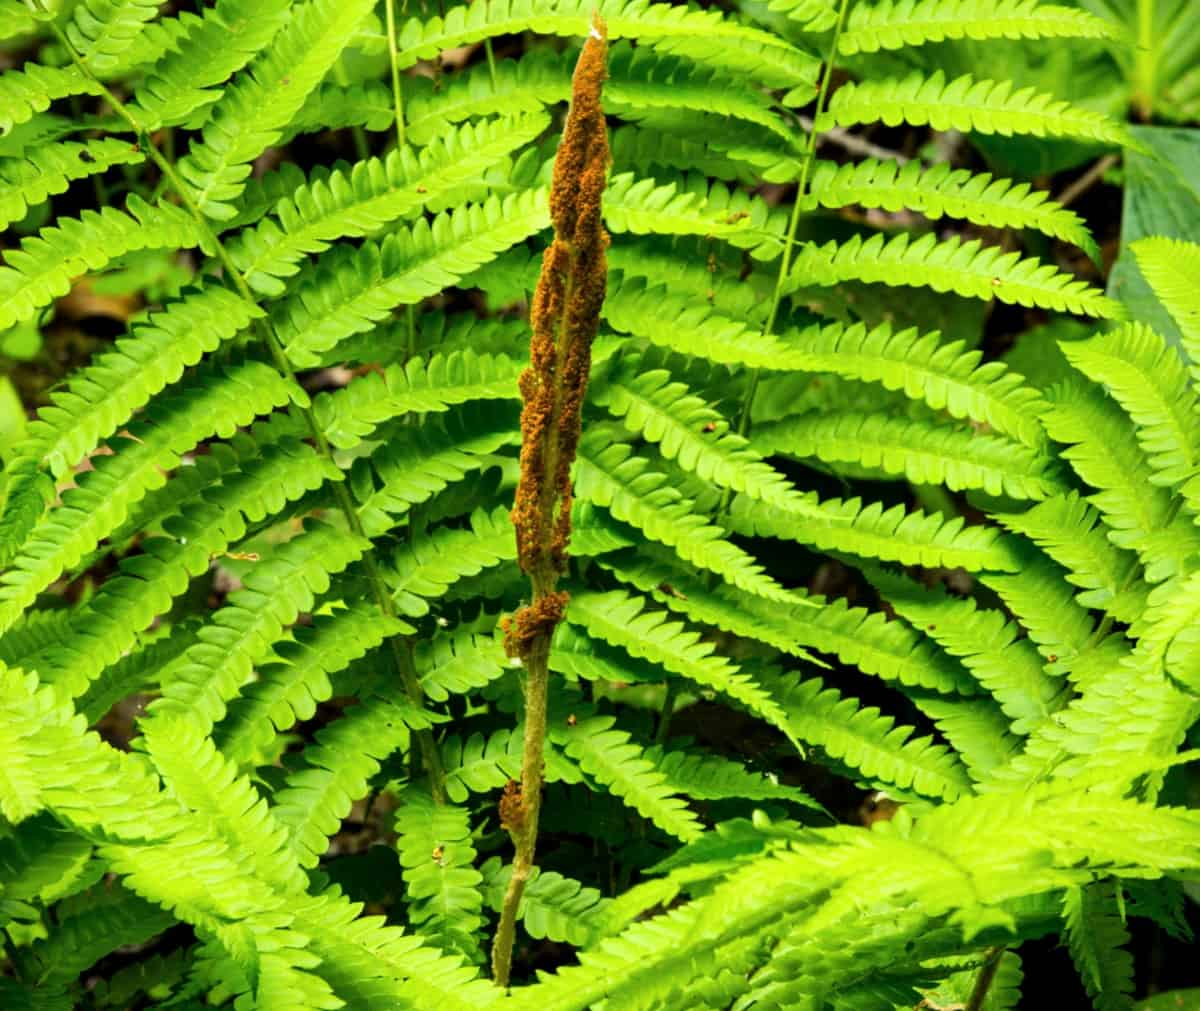 Cinnamon ferns grow in the shape of a vase.